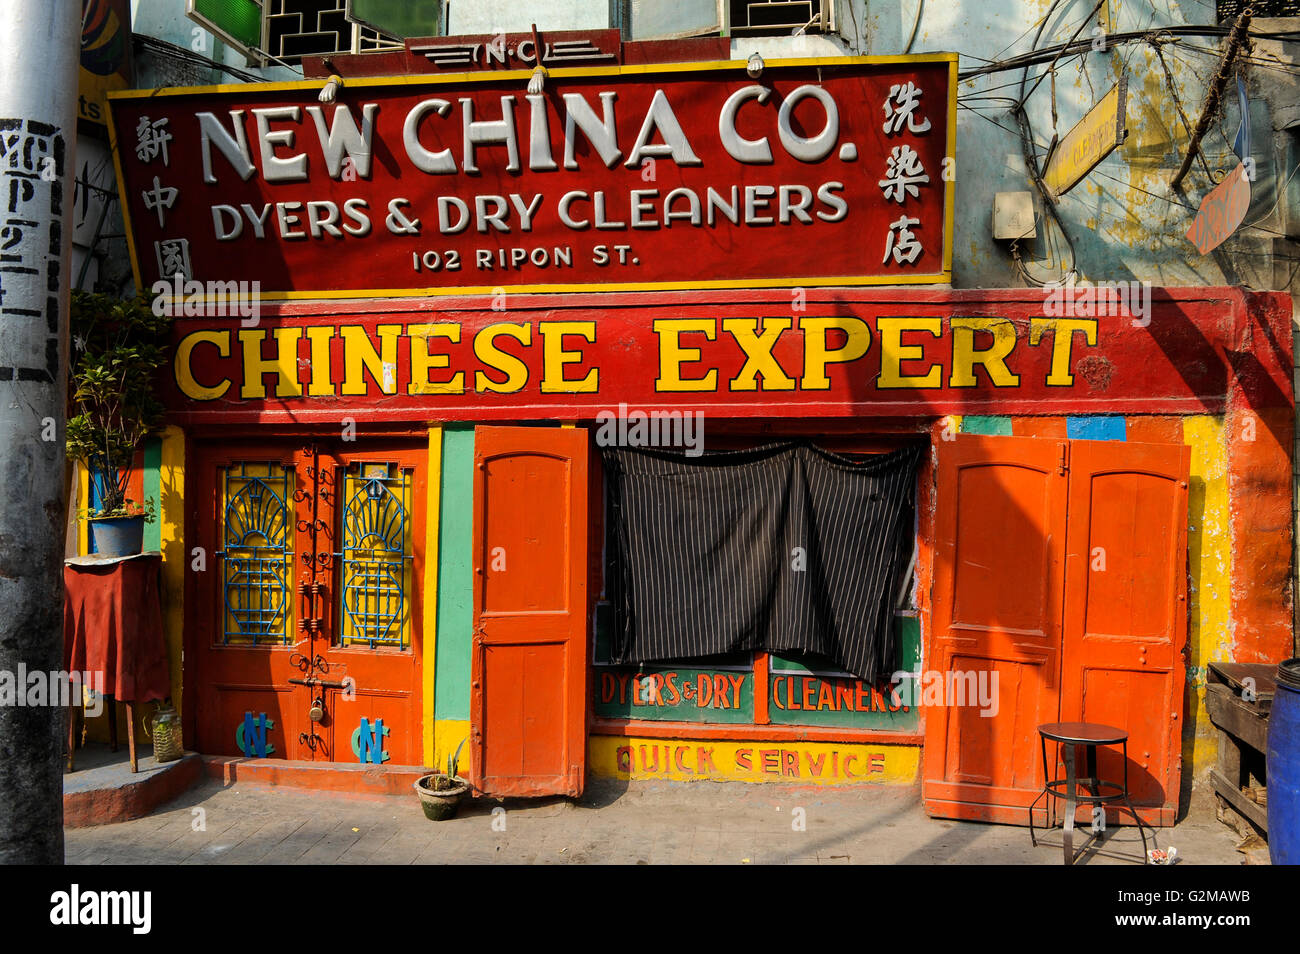 INDIA Westbengal, Kolkata, dyers and dry cleaners shop New China Co. in Ripon street - Stock Image